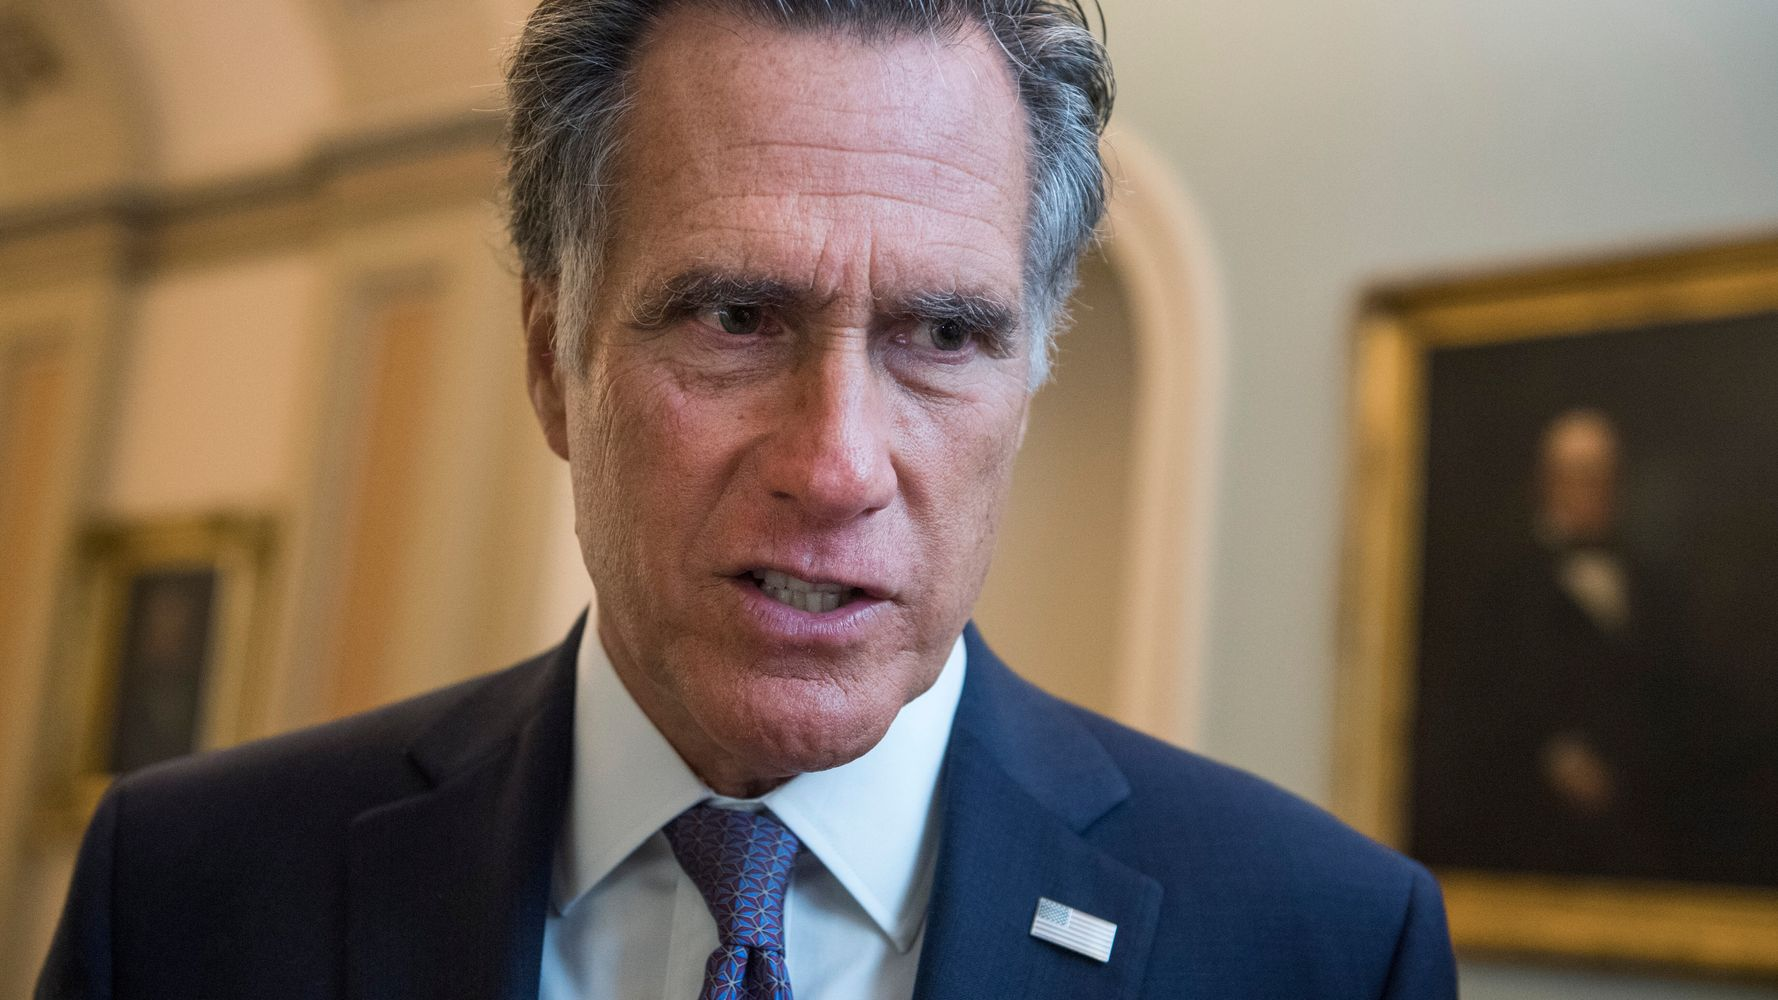 Westlake Legal Group 5d996861210000530331cf6c What Is Romney's Next Move In His Spat With Trump?